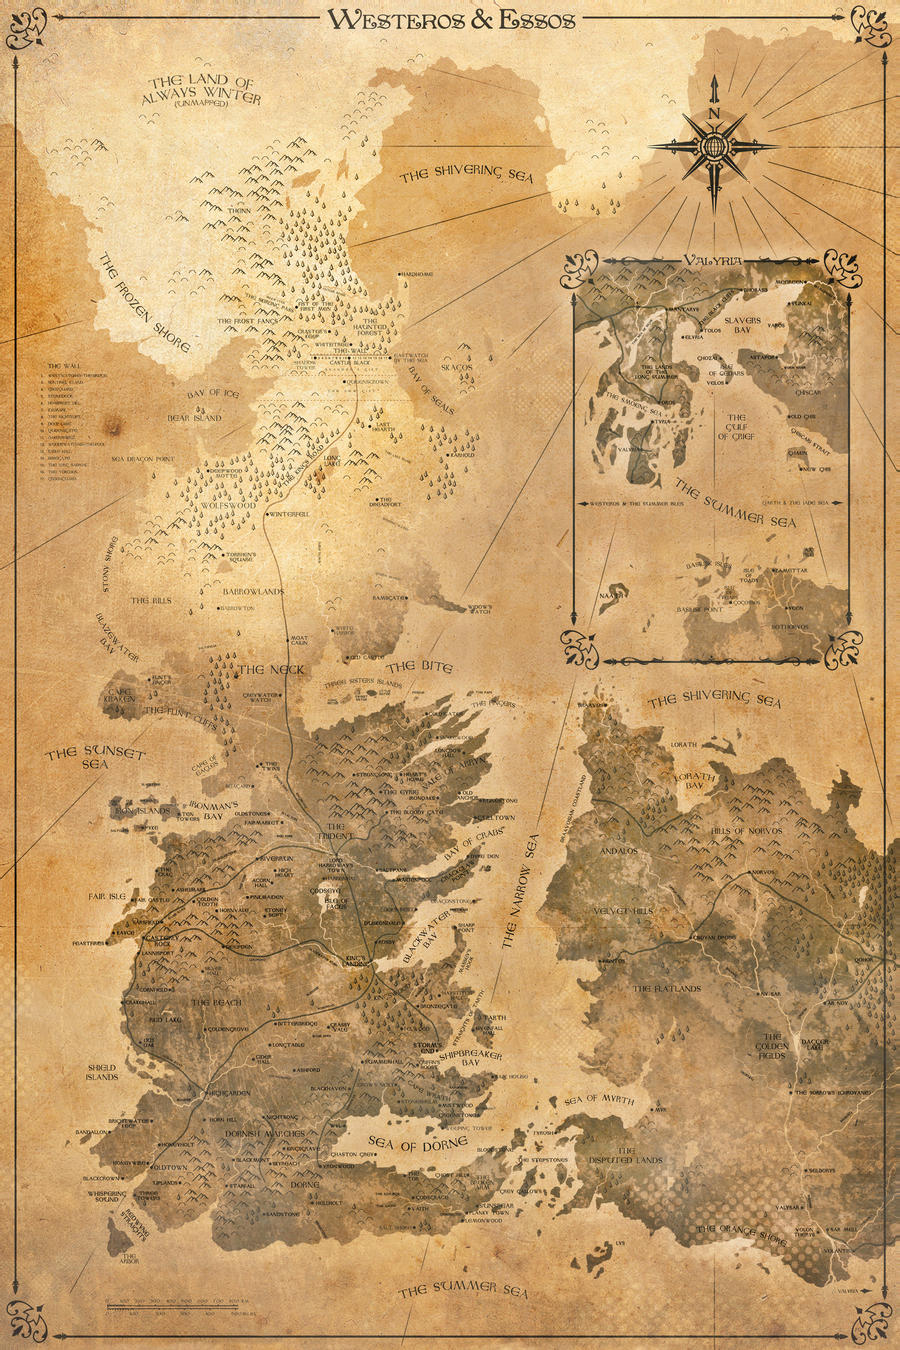 Game of Thrones Map - Westeros and Essos by FabledCreative ... Game Of Thrones Map Westeros on game of thrones ireland map, game of thrones map print, game of thrones map wallpaper, game of thrones detailed map, game of thrones map clans, westeros cities map, game of thrones map of continents, game of thrones map poster, game of thrones world map printable, game of thrones map the south, crown of thrones map, game of thrones map official, from game of thrones map, harrenhal game of thrones map, game of thrones astapor map, the citadel game of thrones map, game of thrones essos map, game of thrones subway map, game of thrones map labeled,